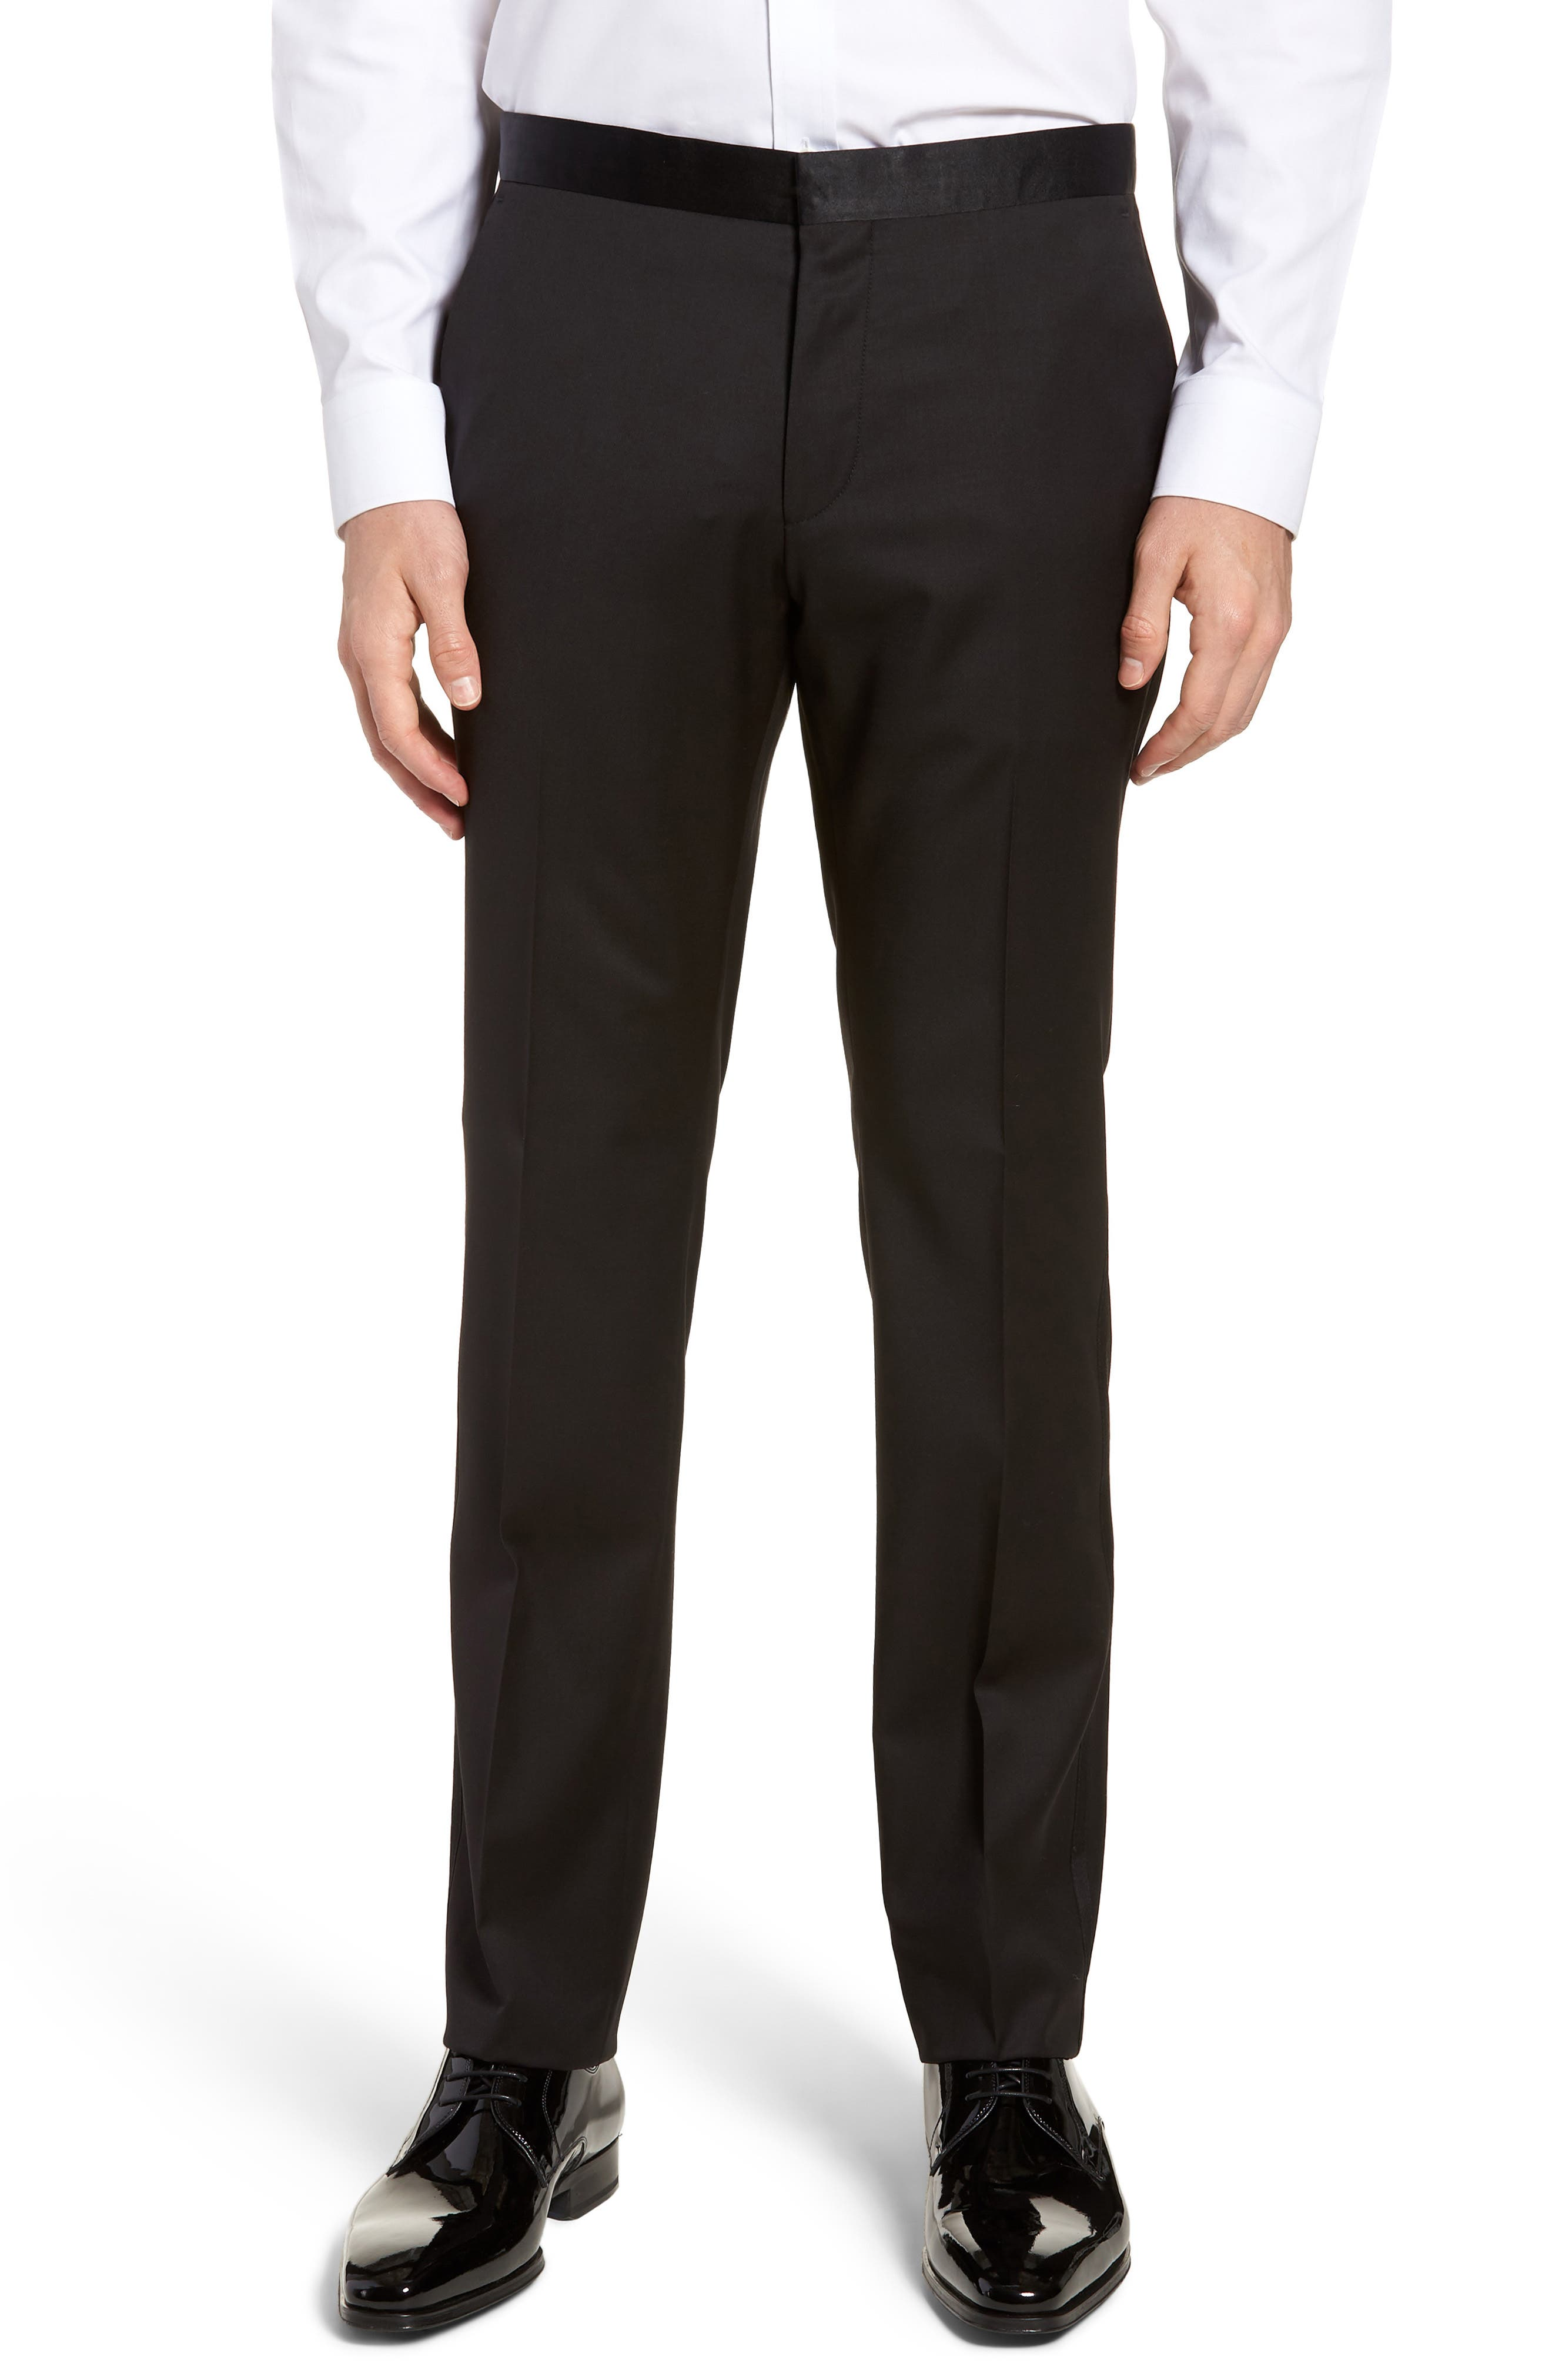 Gilan CYL Flat Front Wool Trousers,                         Main,                         color, BLACK